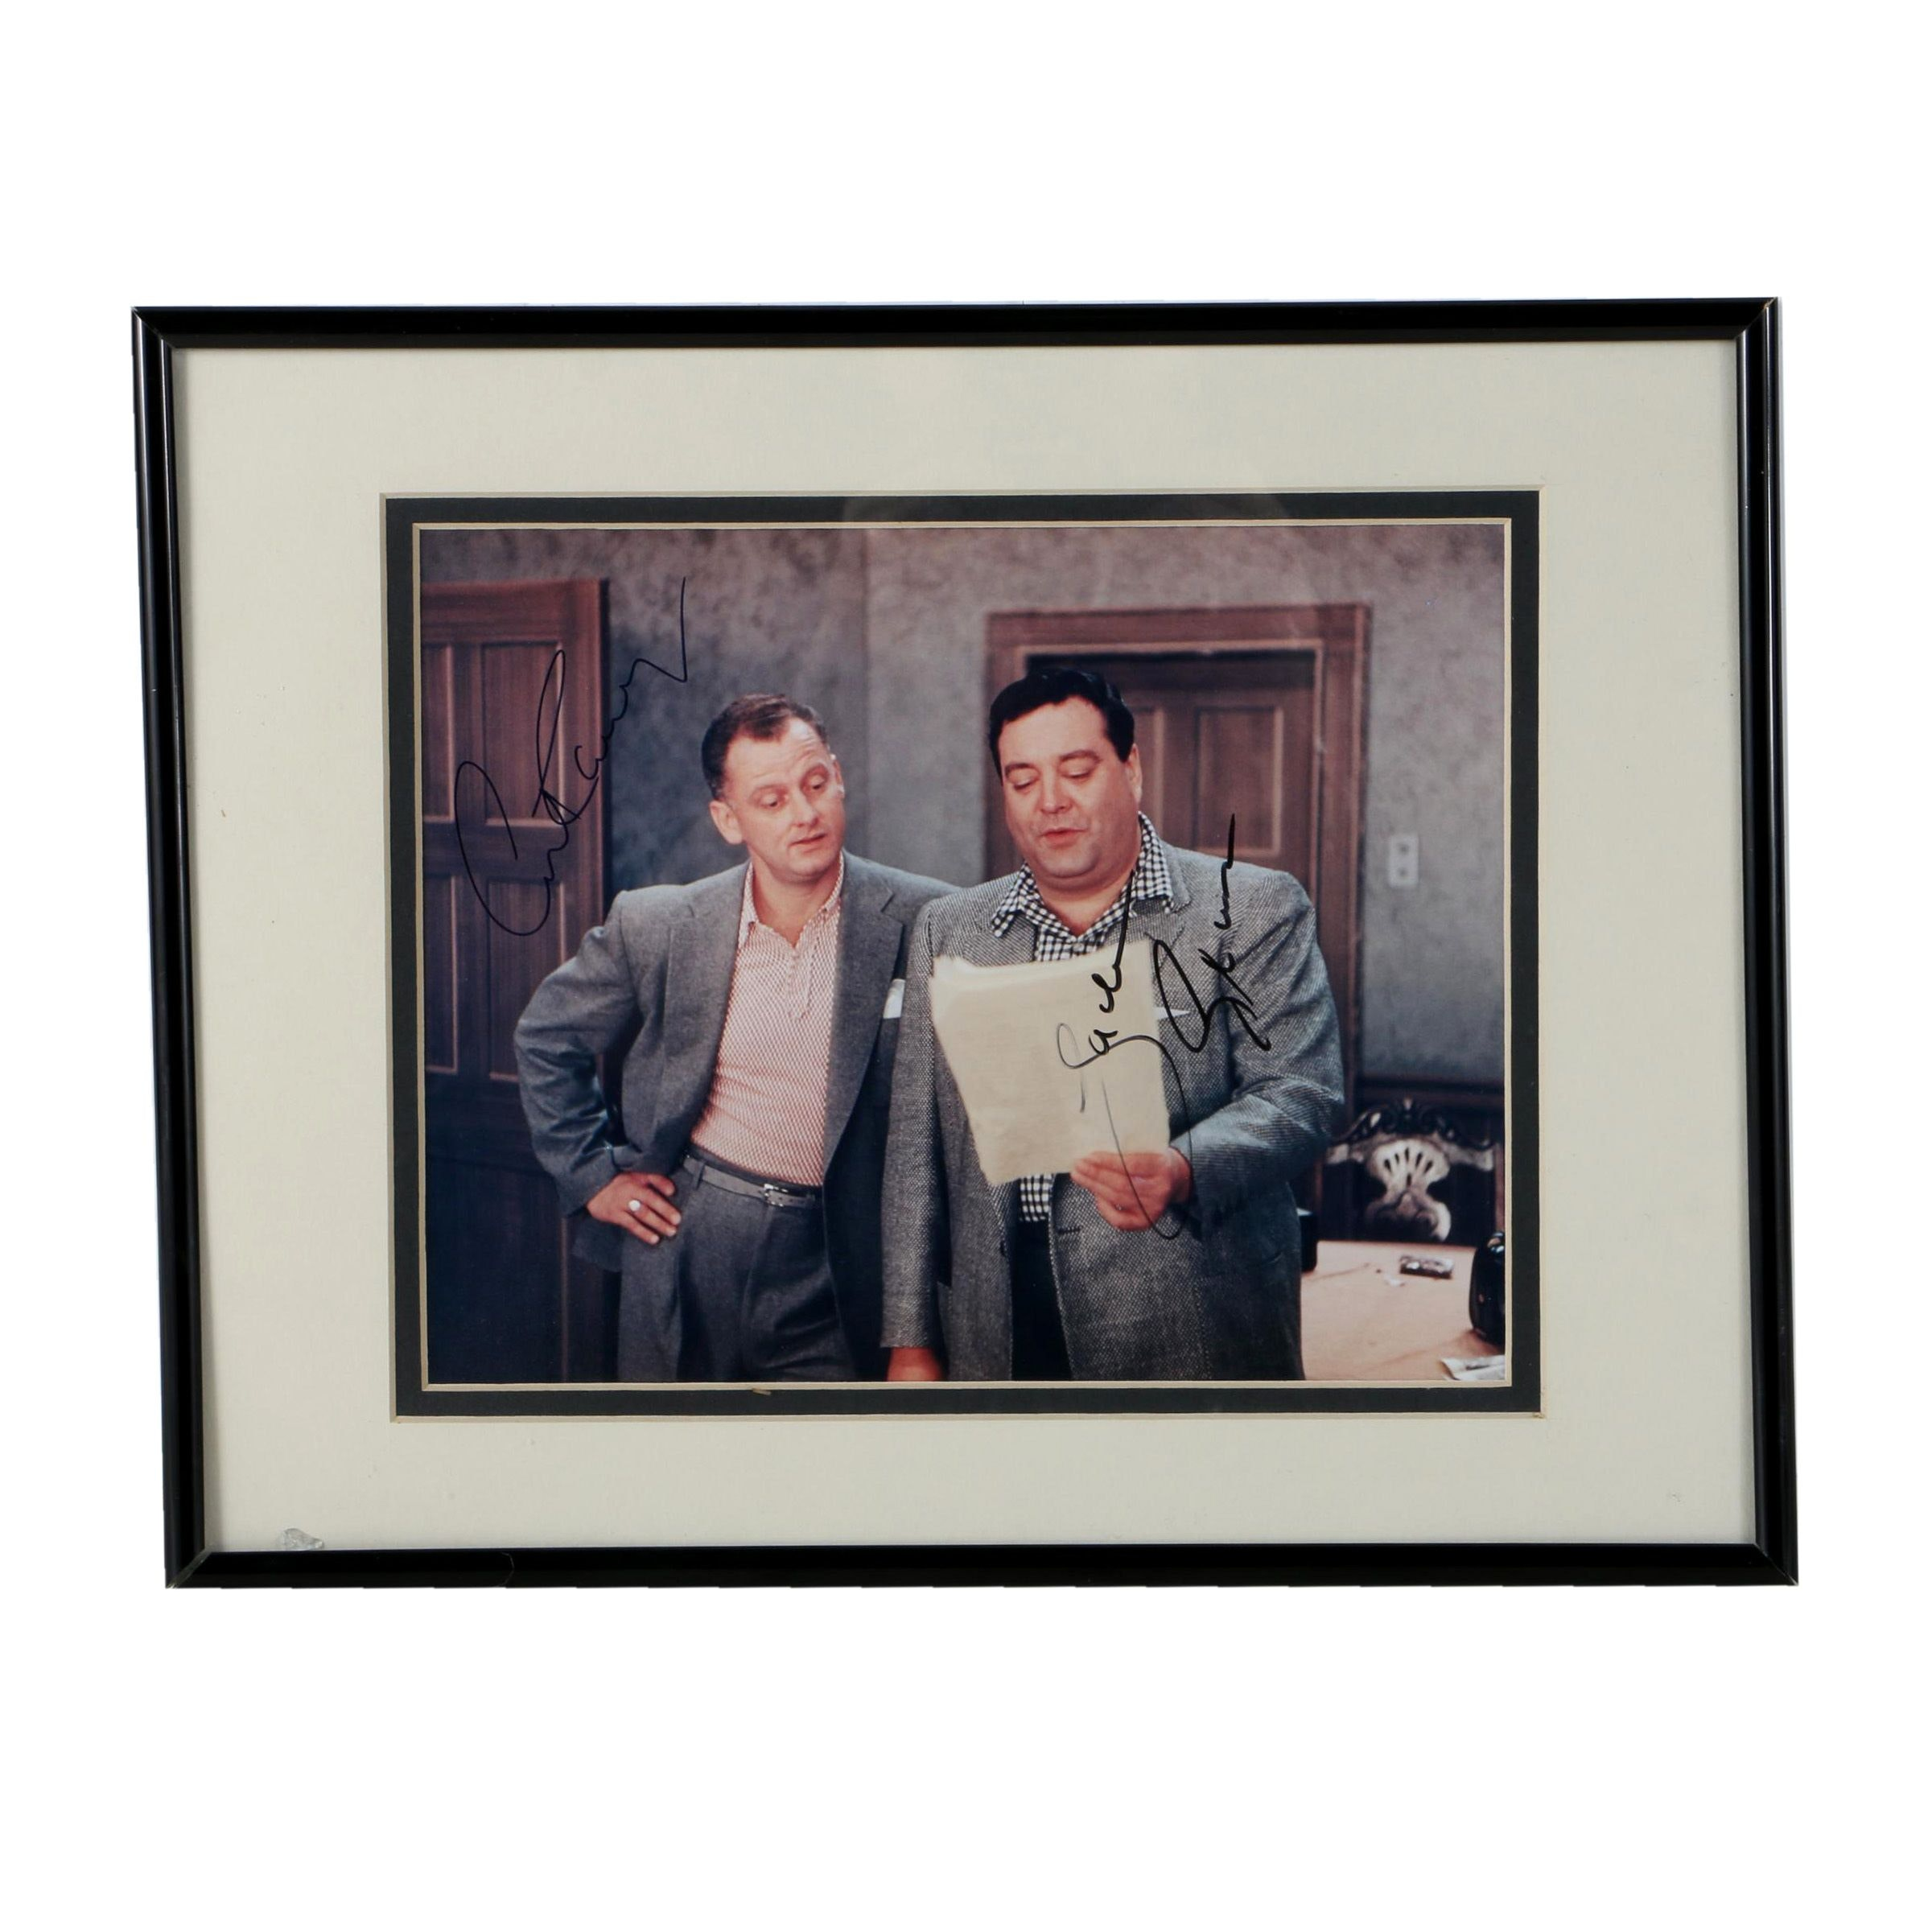 Jackie Gleason and Art Carney Autographed Photo